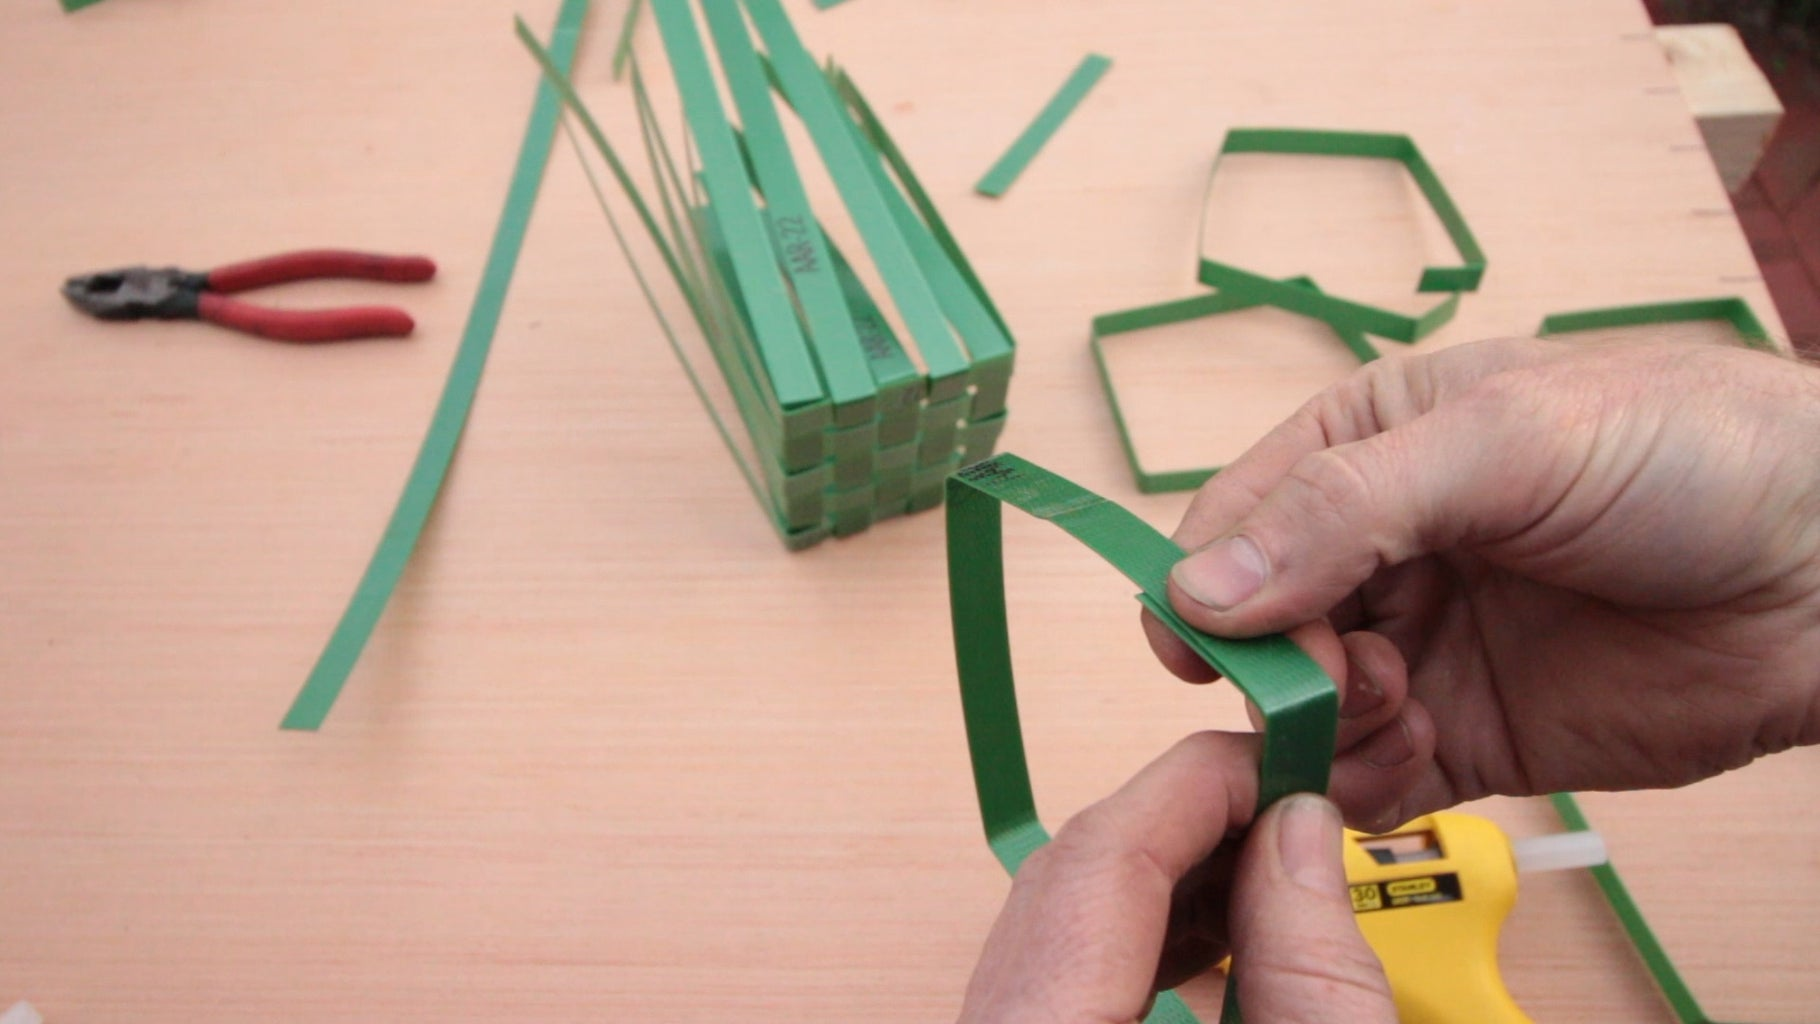 Make Square Hoops for the Sides